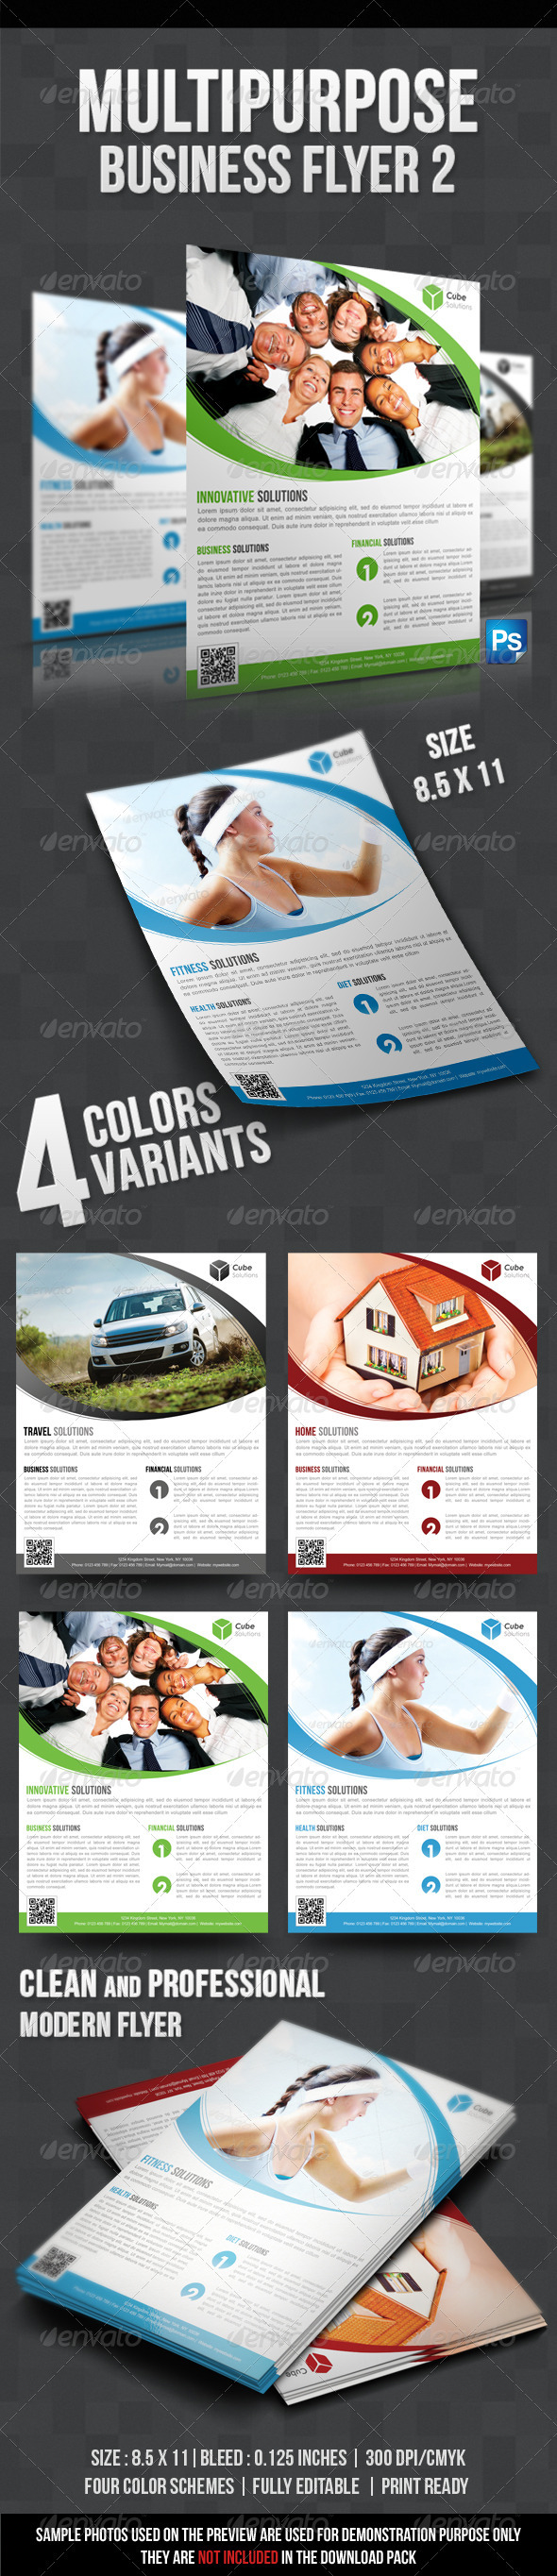 GraphicRiver Multipurpose Business Flyer 2 3155890